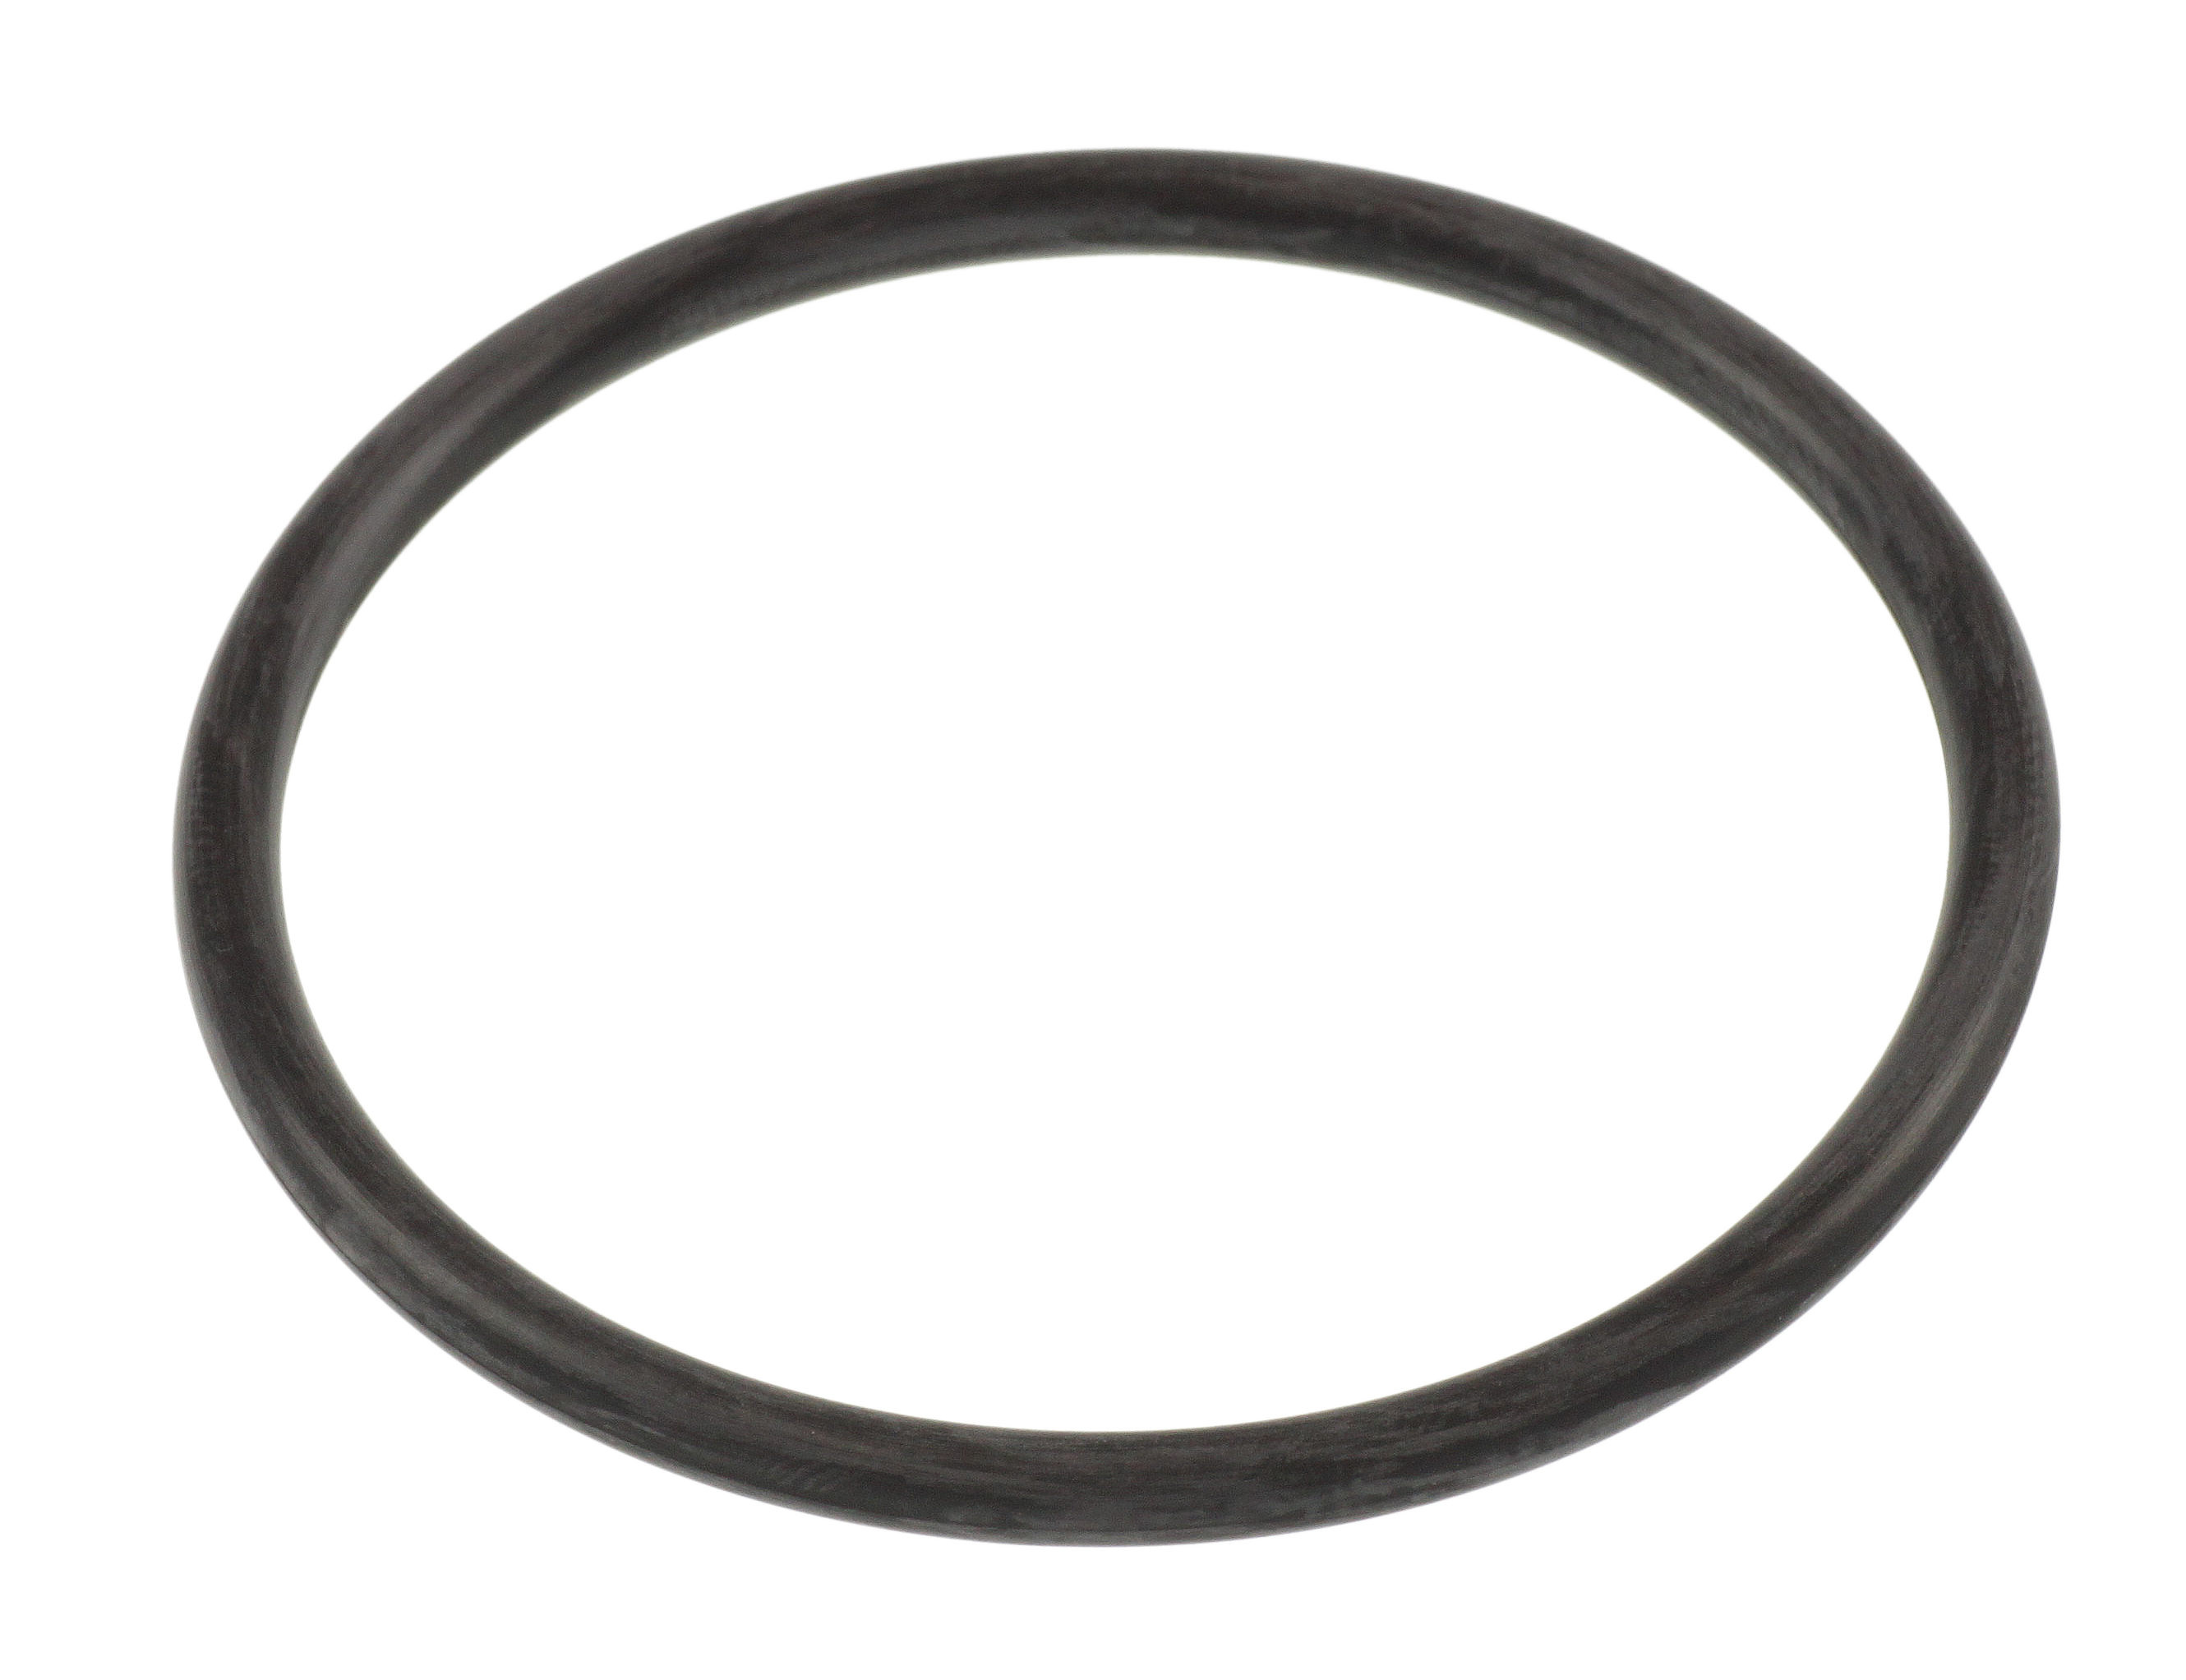 New MS28775-236 o-ring